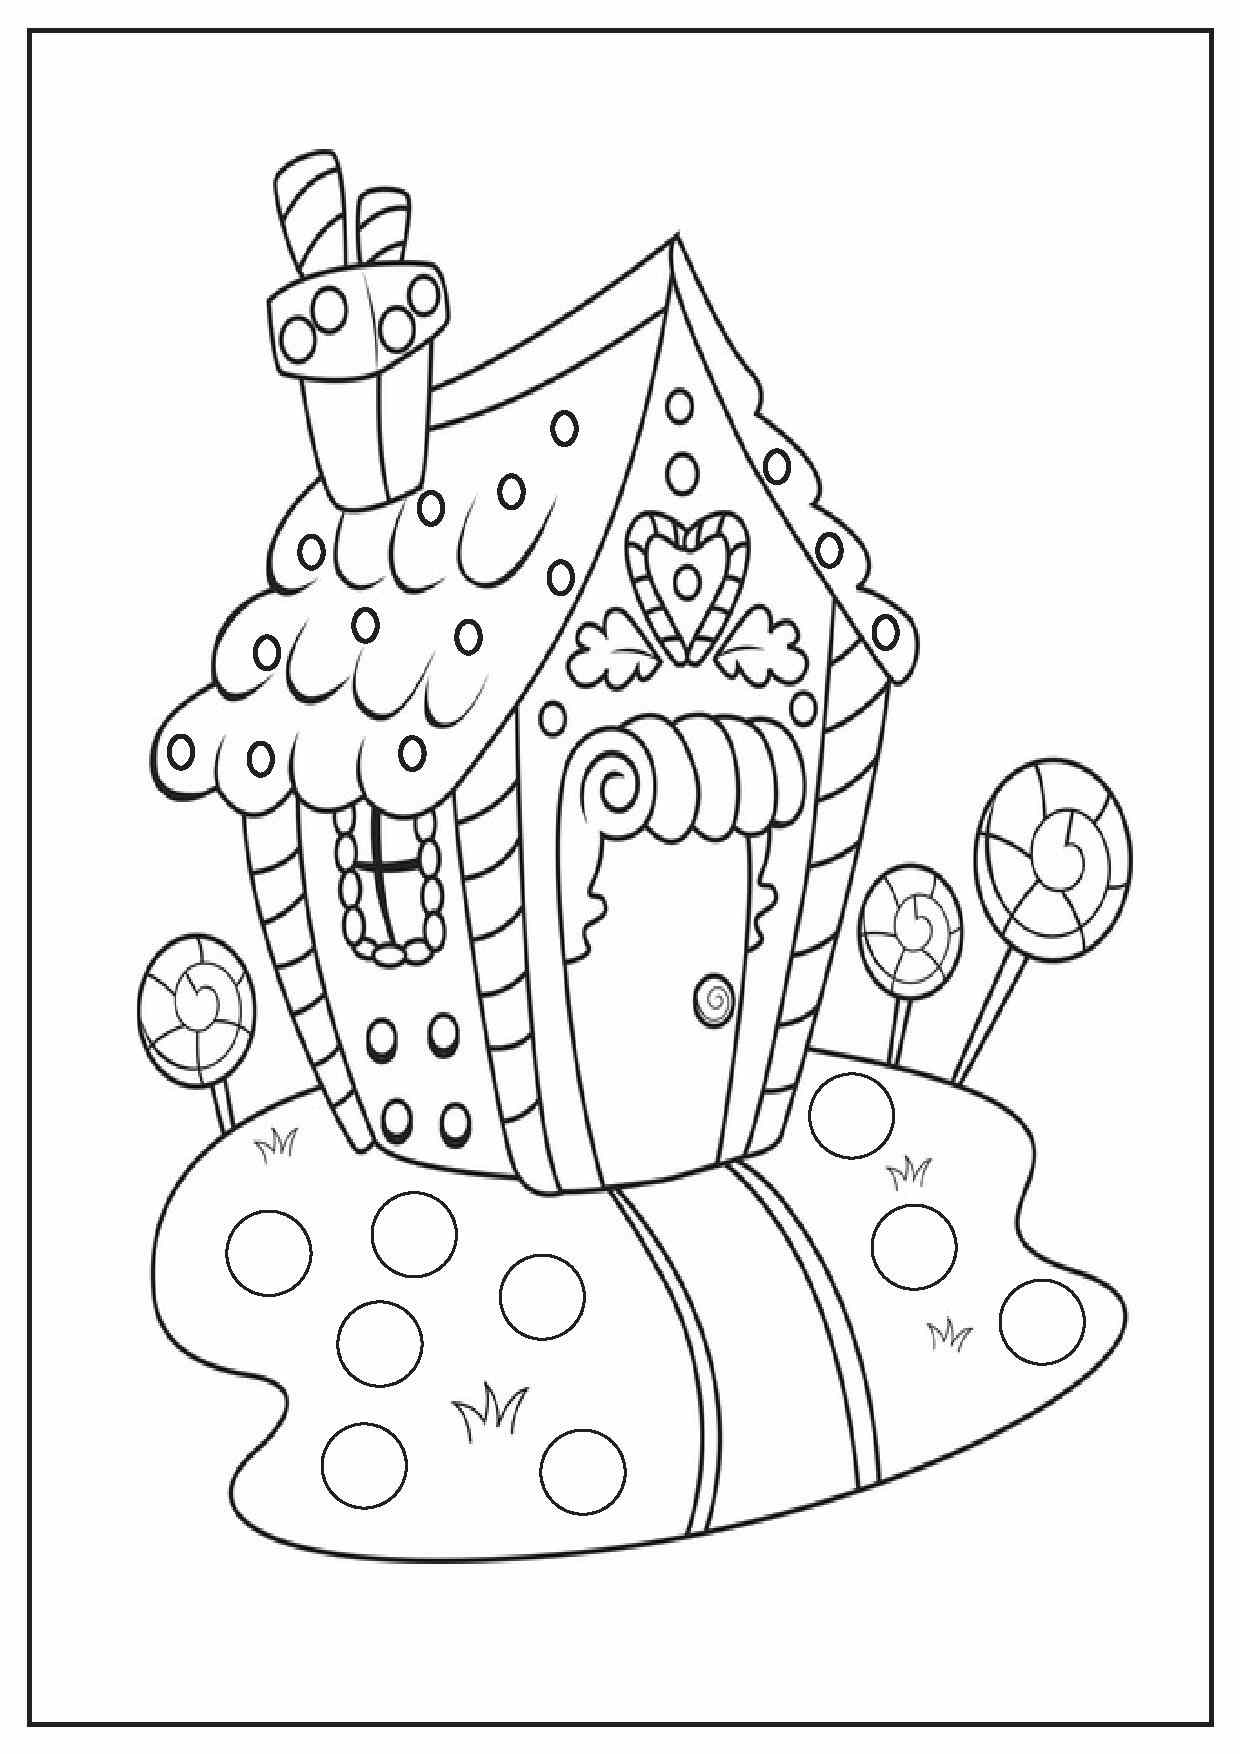 kindergarten color pages - kindergarten coloring sheets only coloring pages